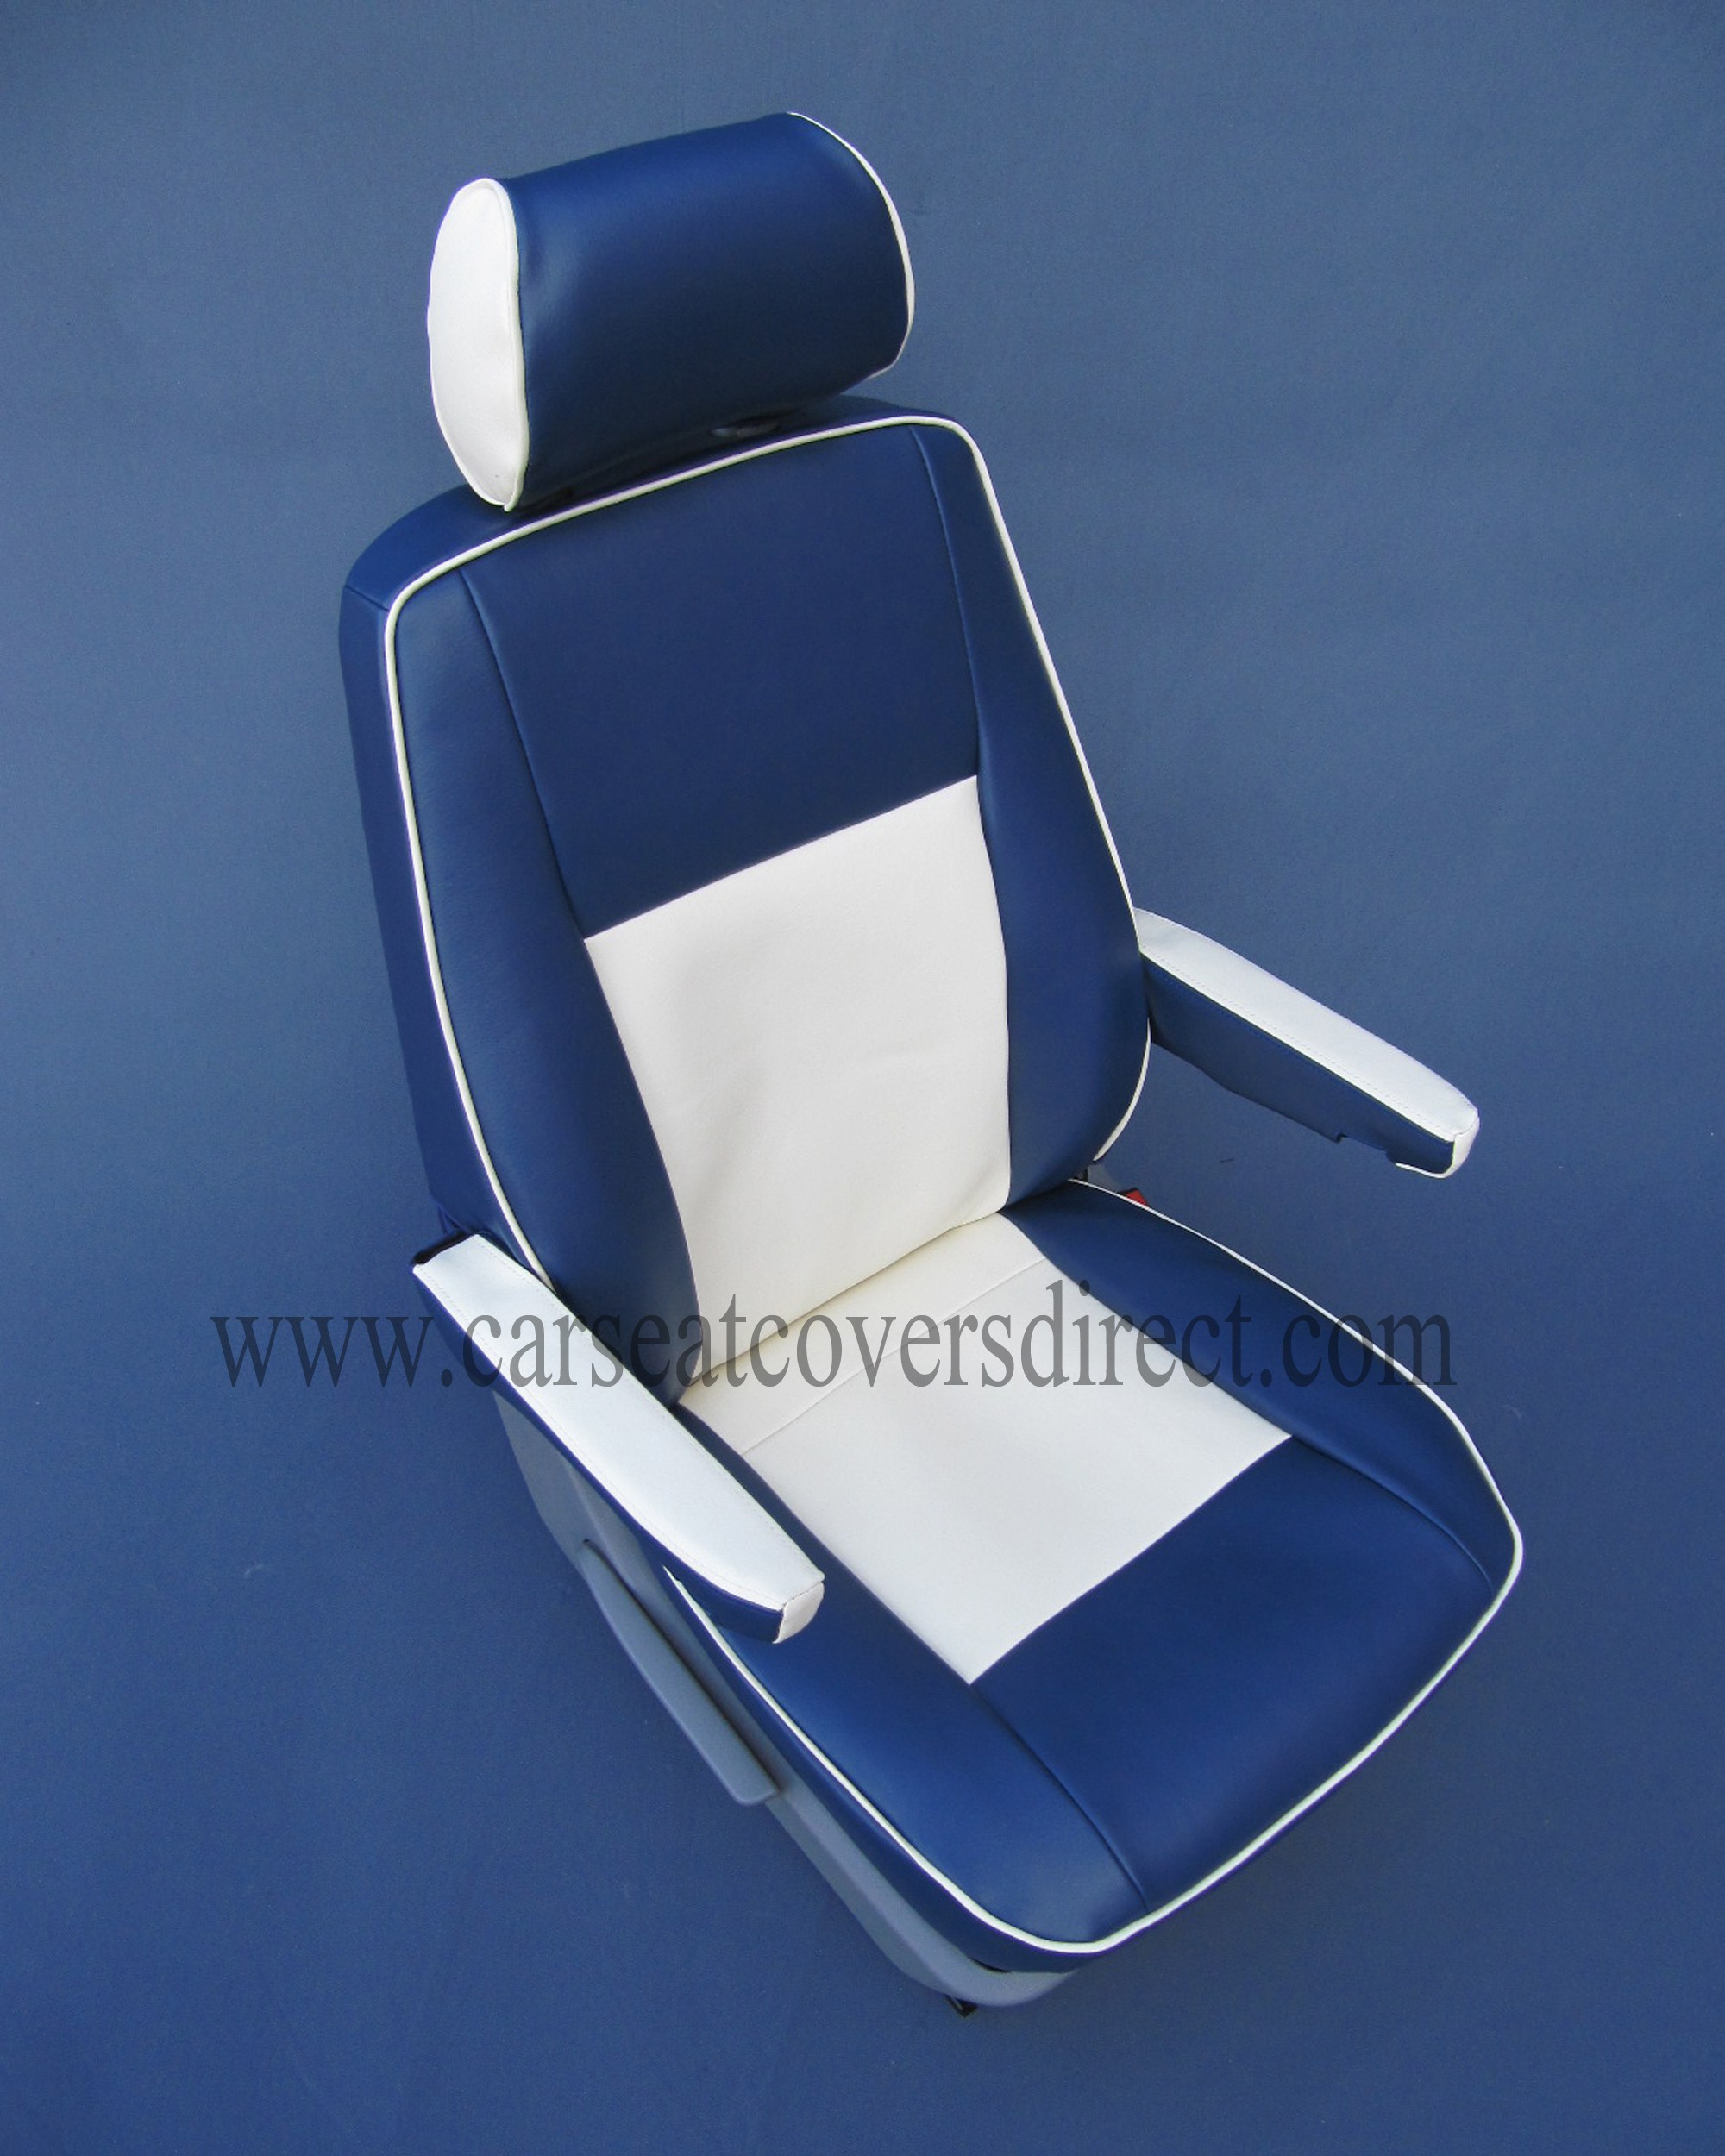 VW T5 Seat Covers Blue & White Car Seat Covers Direct Tailored